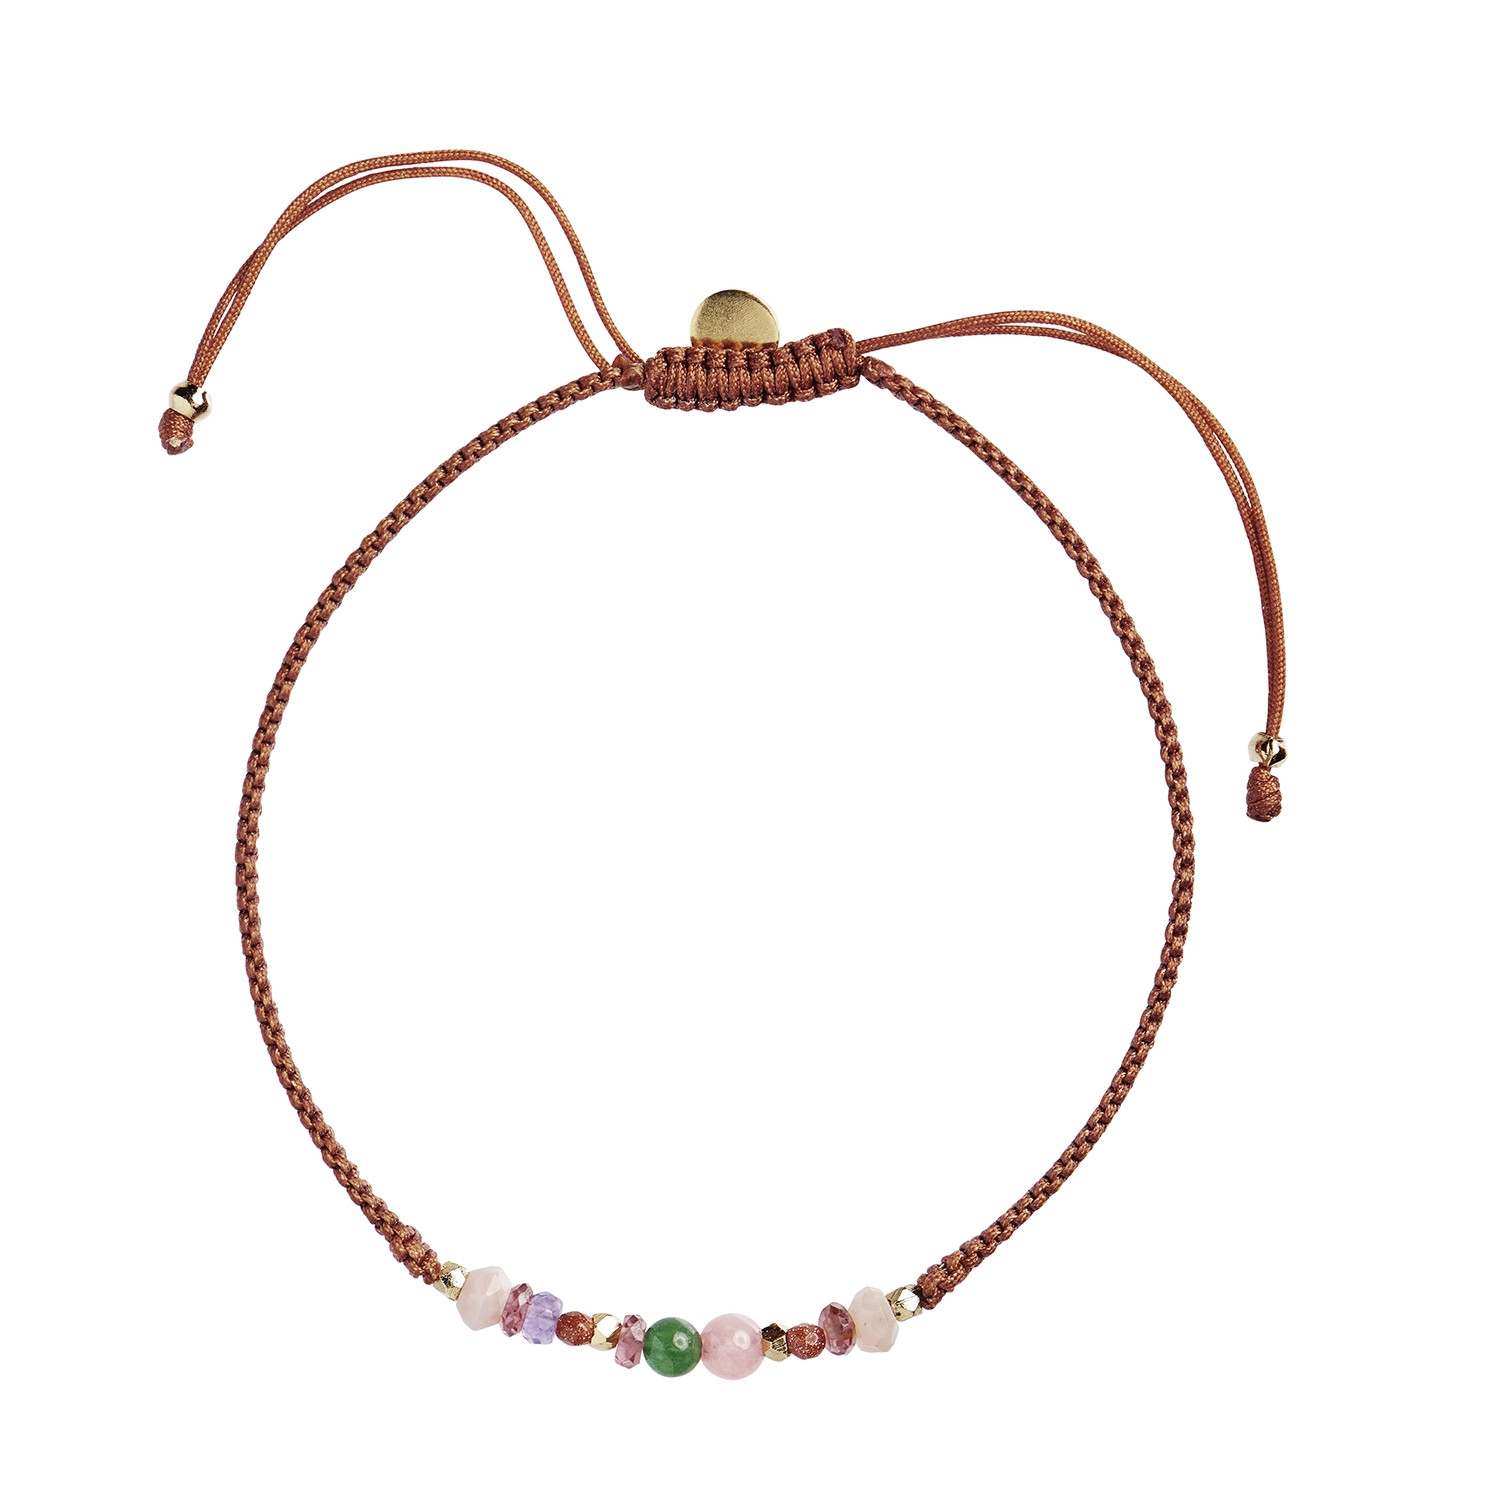 Candy Bracelet - Multi Mix and Rust Ribbon